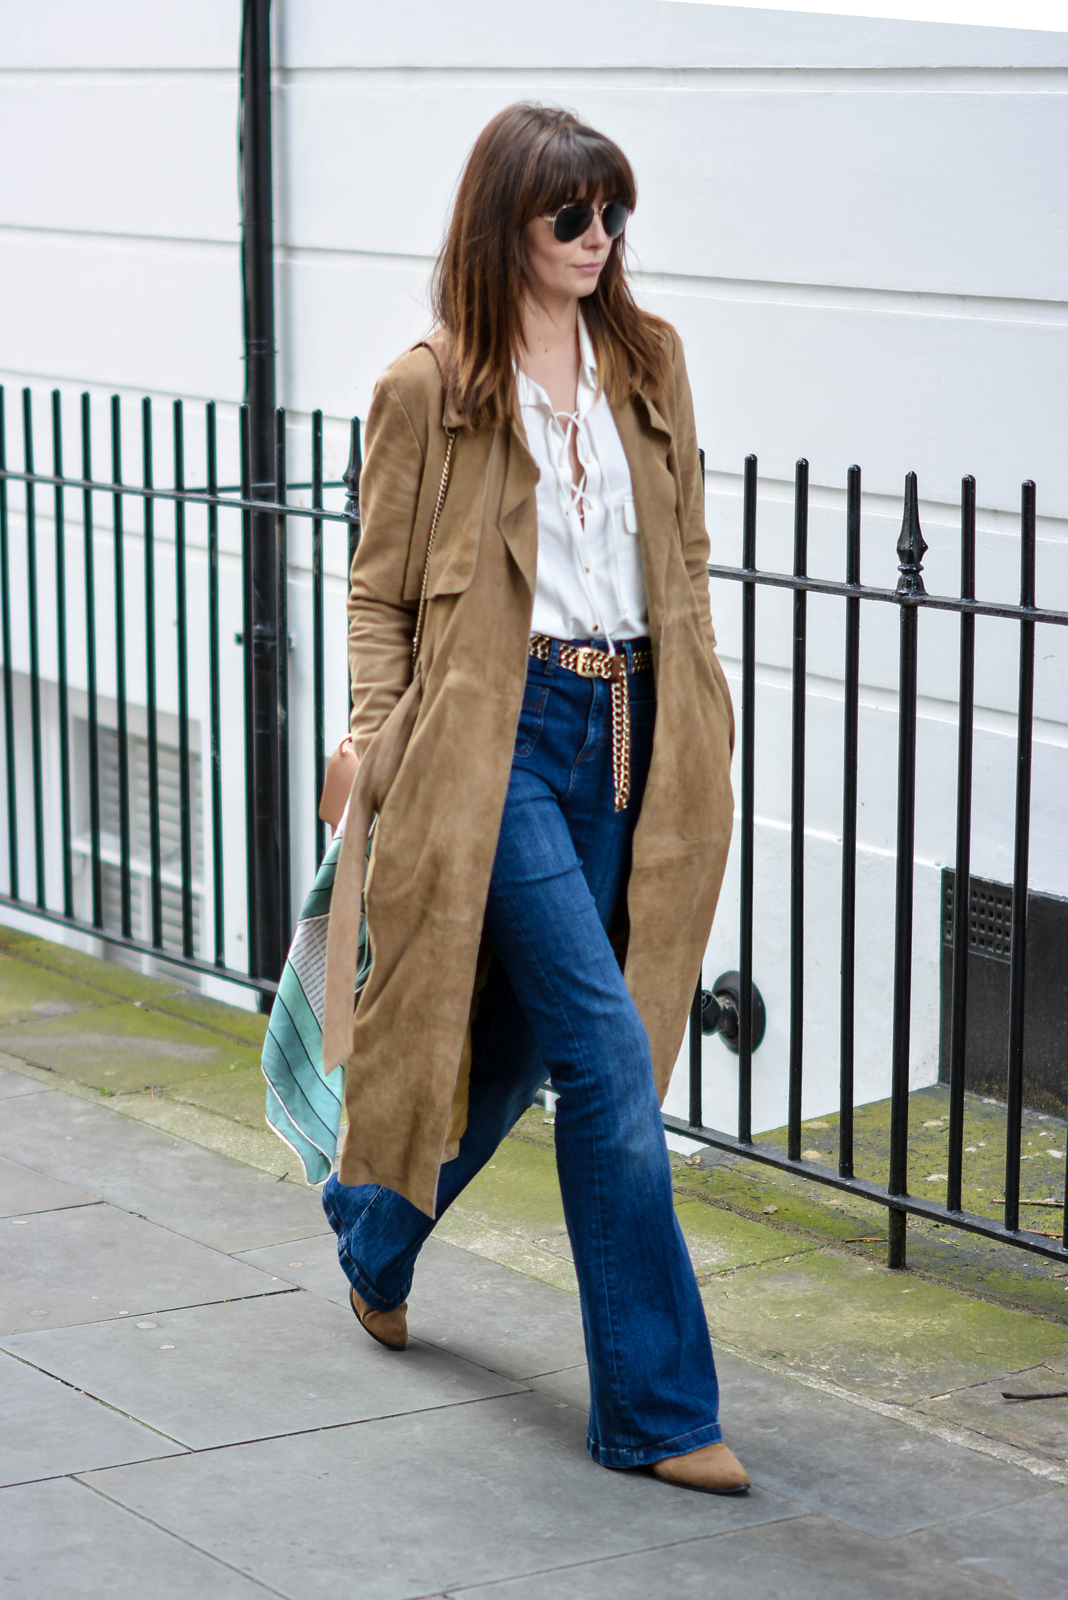 EJSTYLE - Suede trench coat by Gestuz, Zara lace up shirt, M&S High waisted flare jeans, tan chain belt, gold aviator sunglasses, Chloe drew dupe bag, Vintage valentino scarf, tan ankle boots, 70s inspired outfit